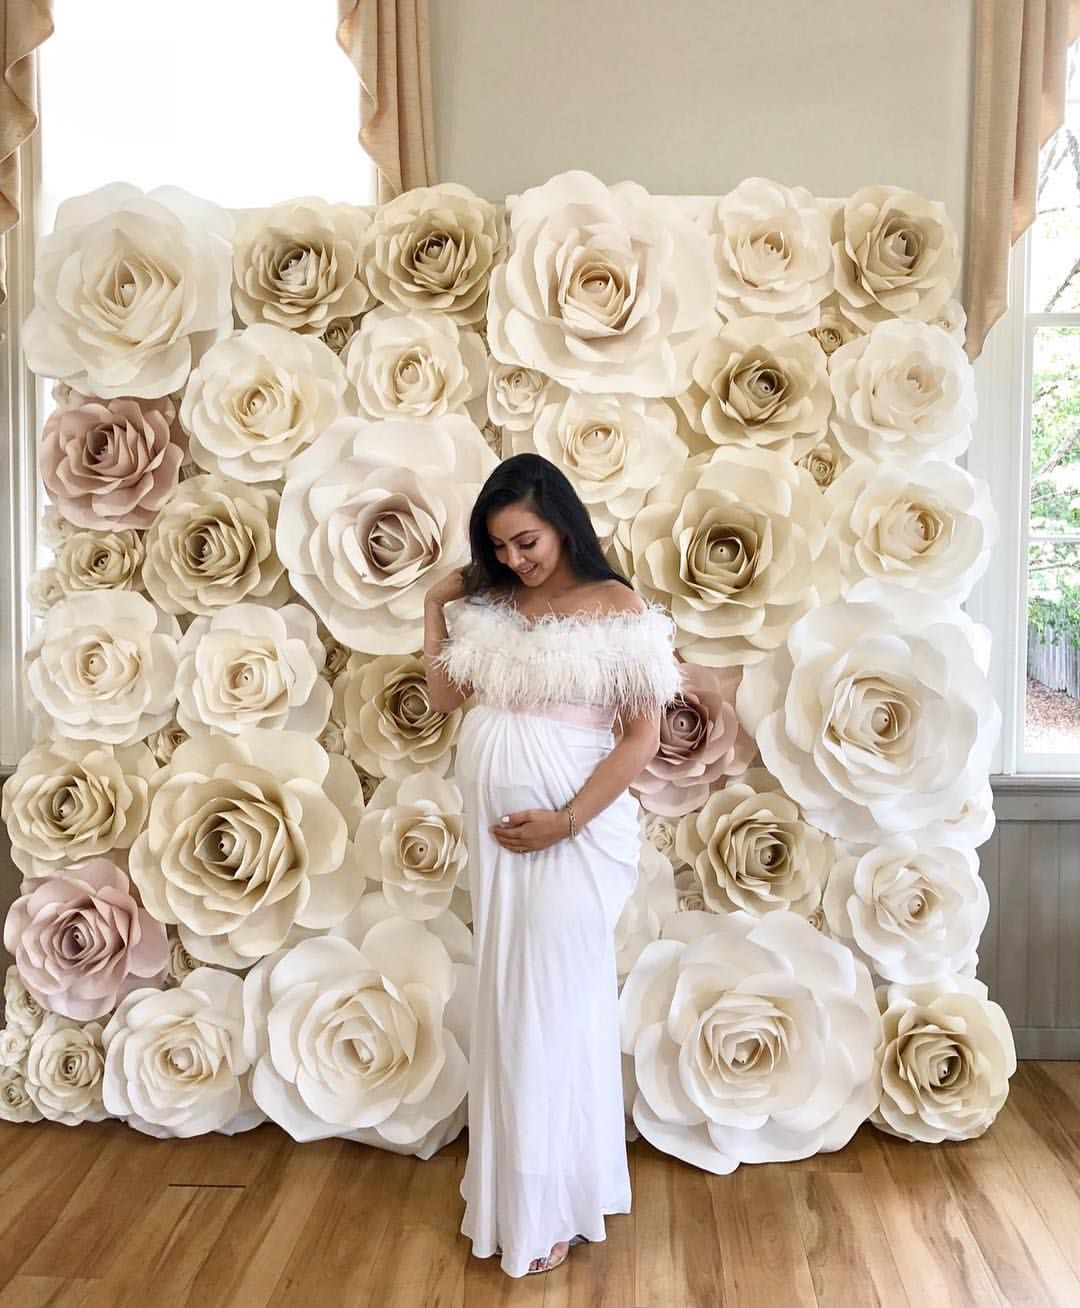 """Darya on Instagram """"8x8 Paper Rose Wall for a beautiful momma! paperflowers paperroses paperrose paperrosewall paperflowerbackdrop backdrop rentals diy…"""" is part of Flower wall wedding - 2,477 Likes, 44 Comments  Darya (@annnevilledesign) on Instagram """"8x8 Paper Rose Wall for a beautiful momma! paperflowers paperroses paperrose paperrosewall…"""""""